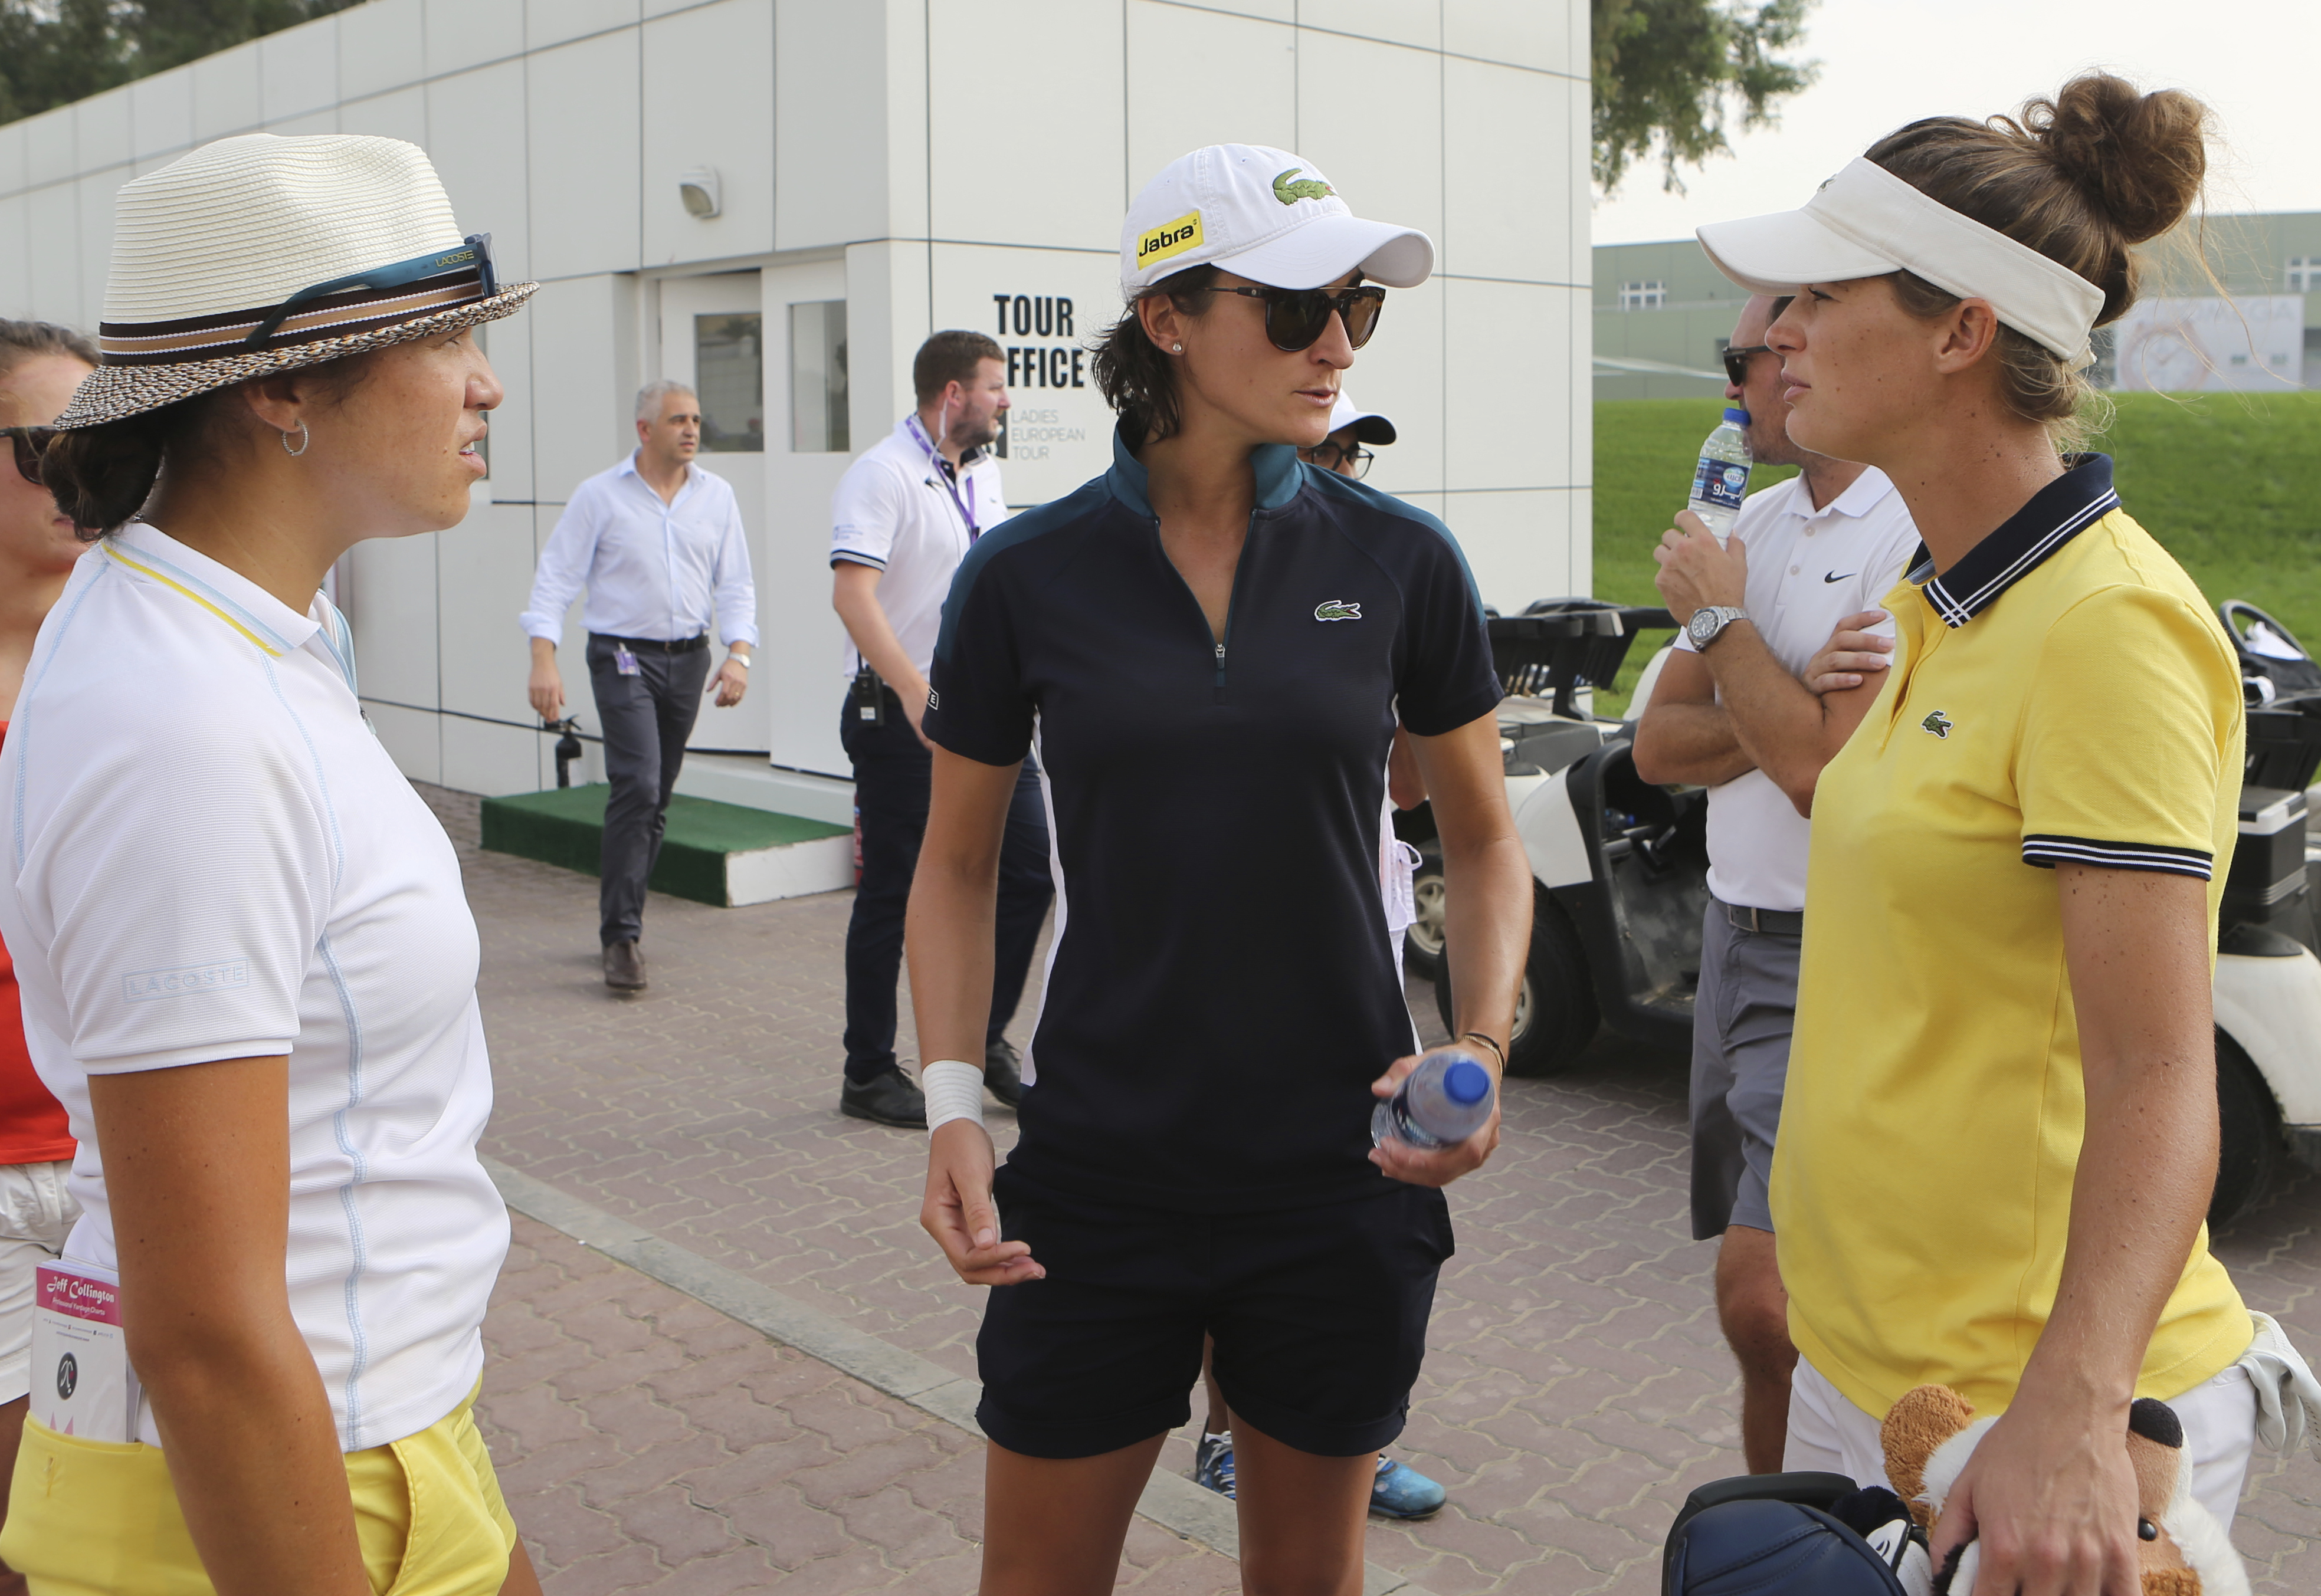 Anne-Lise Caudal of France, middle, talks to her fellow country players after her caddie collapsed on the course, which led to an immediate suspension of play during the 1st round of Dubai Ladies Masters golf tournament in Dubai, United Arab Emirates, Wed